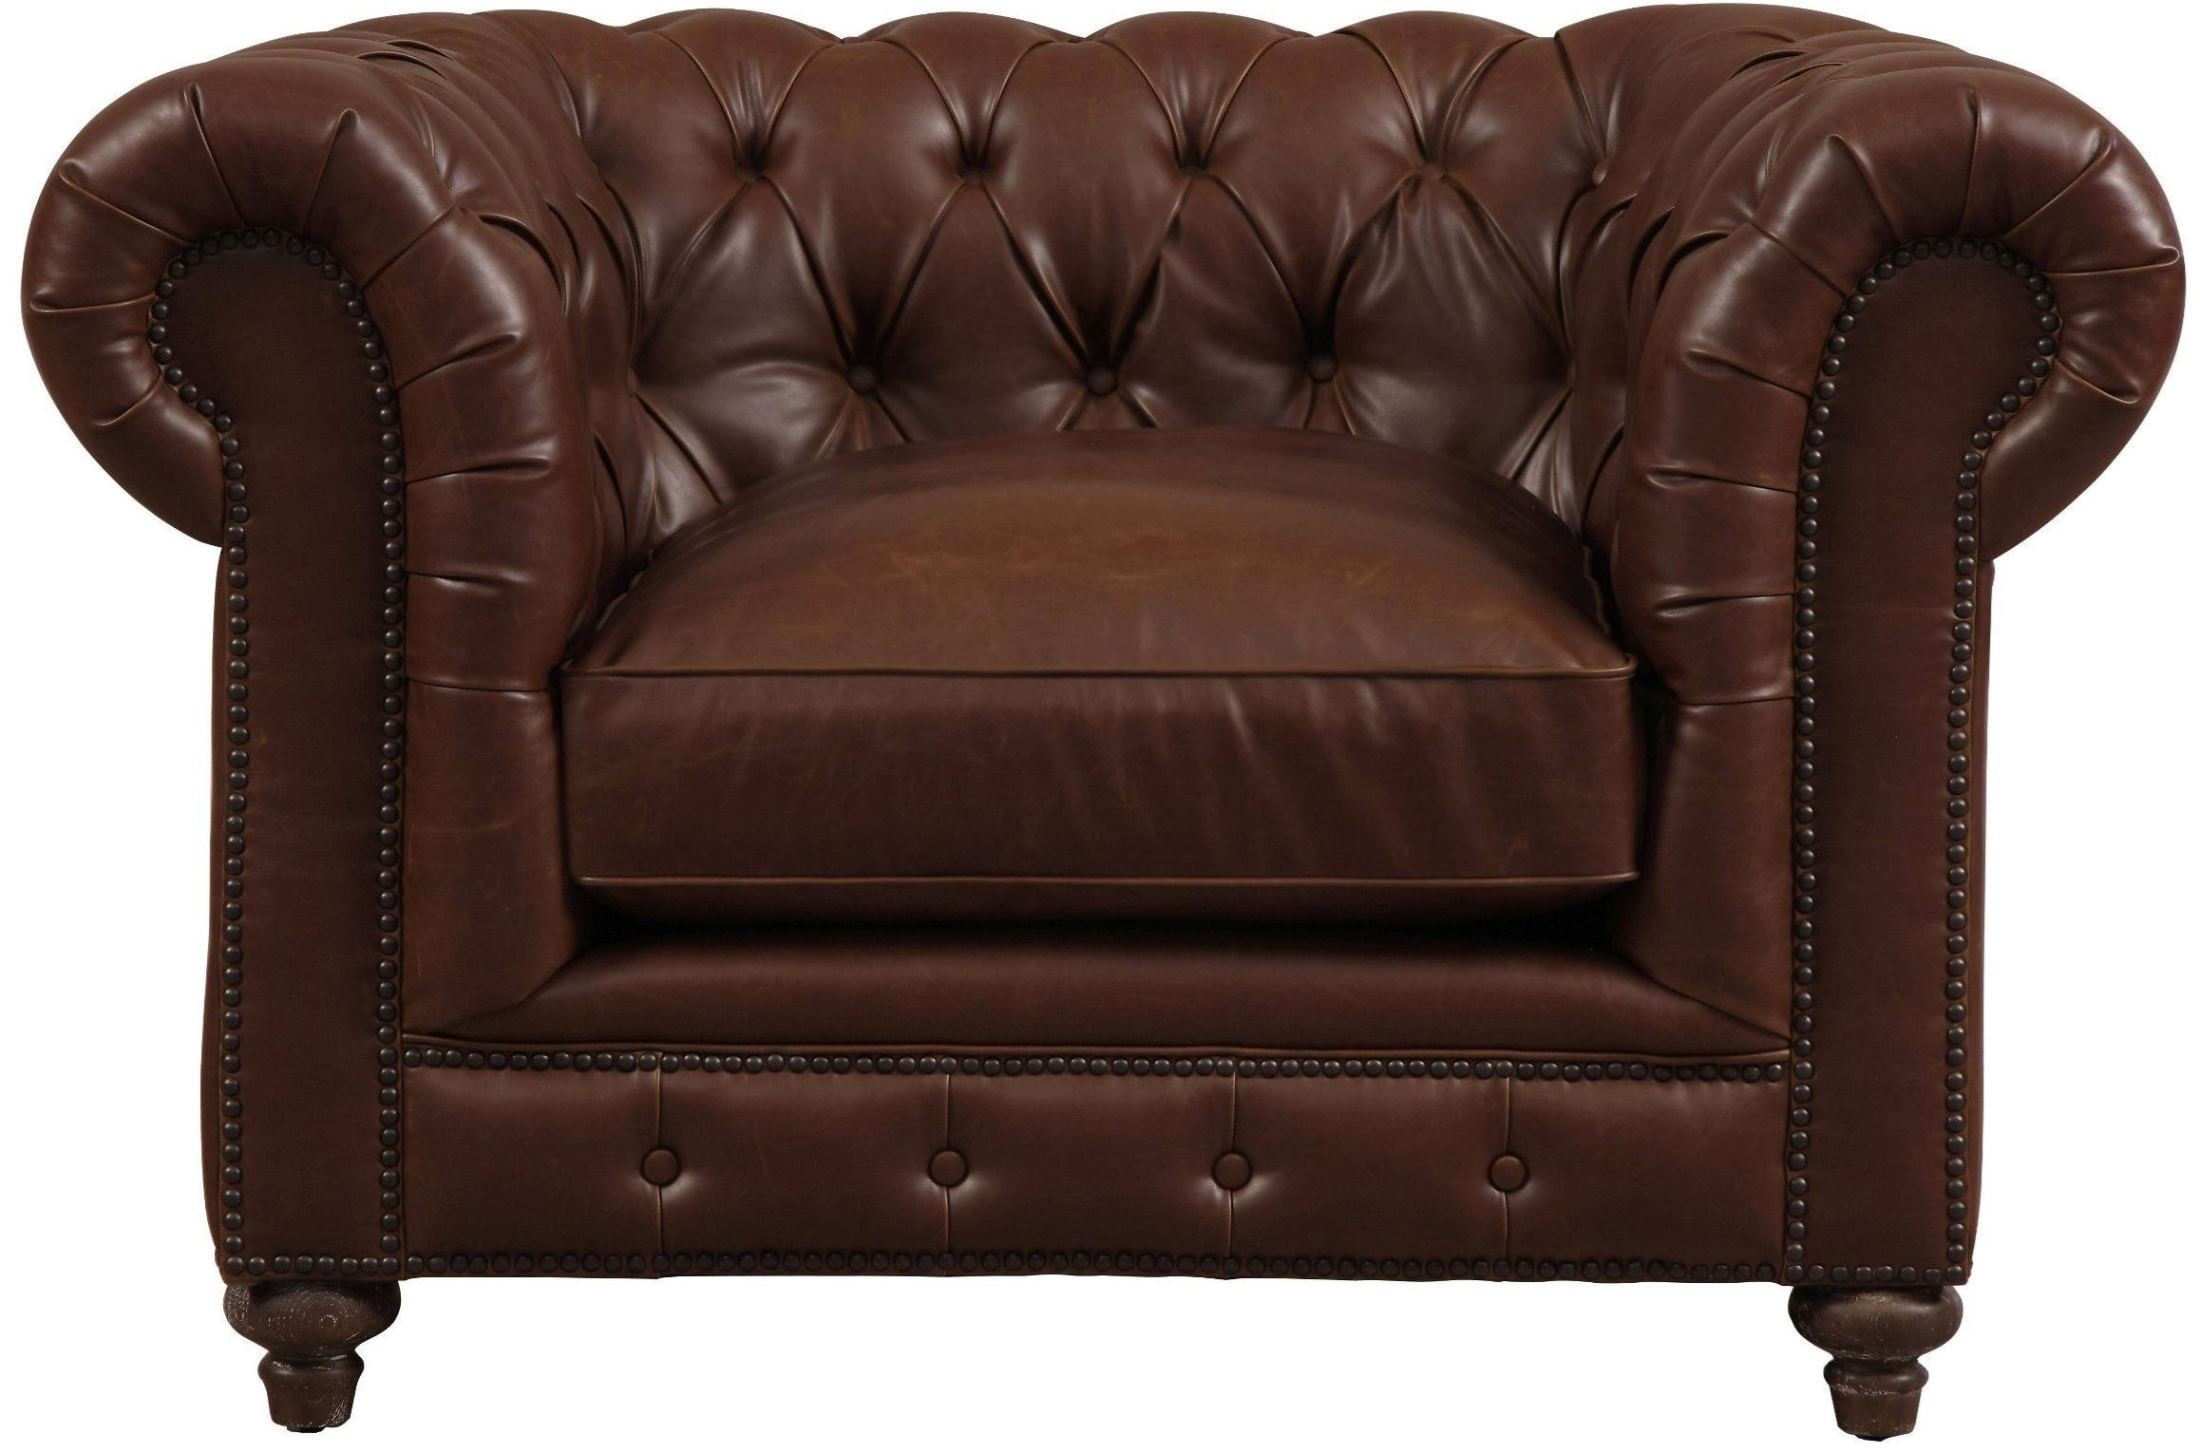 Club Chair Leather Durango Antique Brown Leather Club Chair From Tov